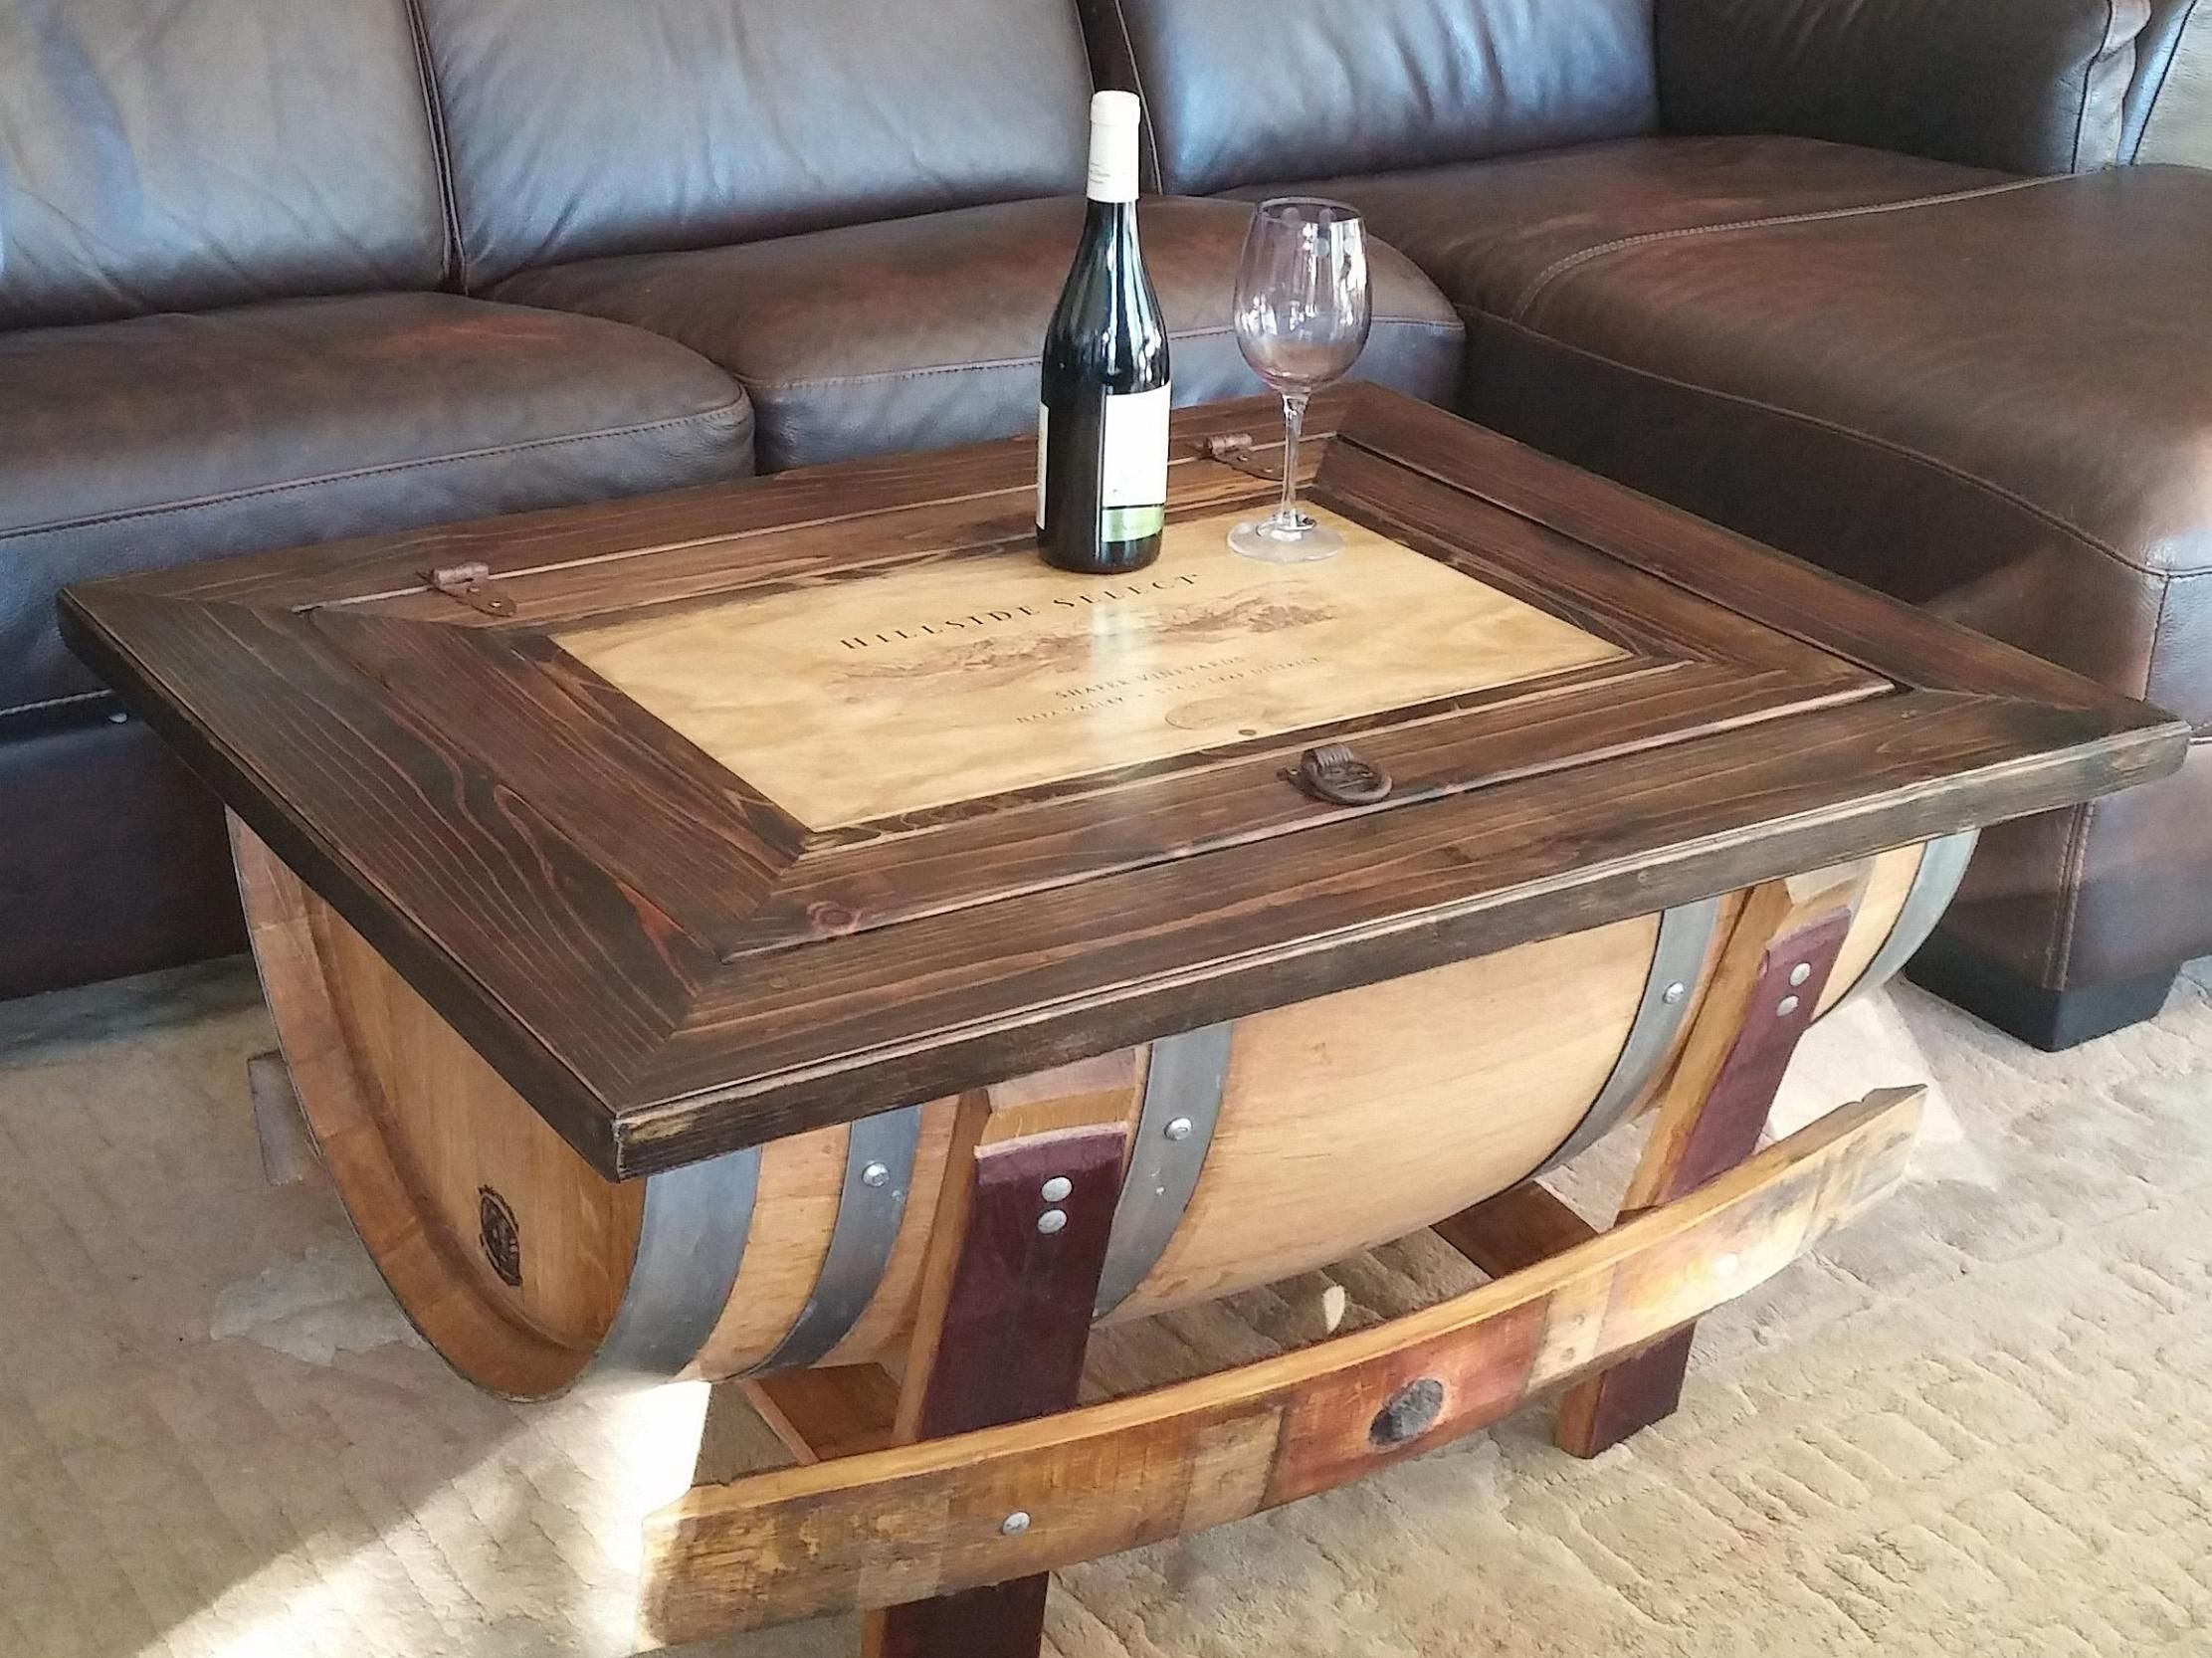 Pin By Chassandra On Home Design Barrel Coffee Table Wine Barrel